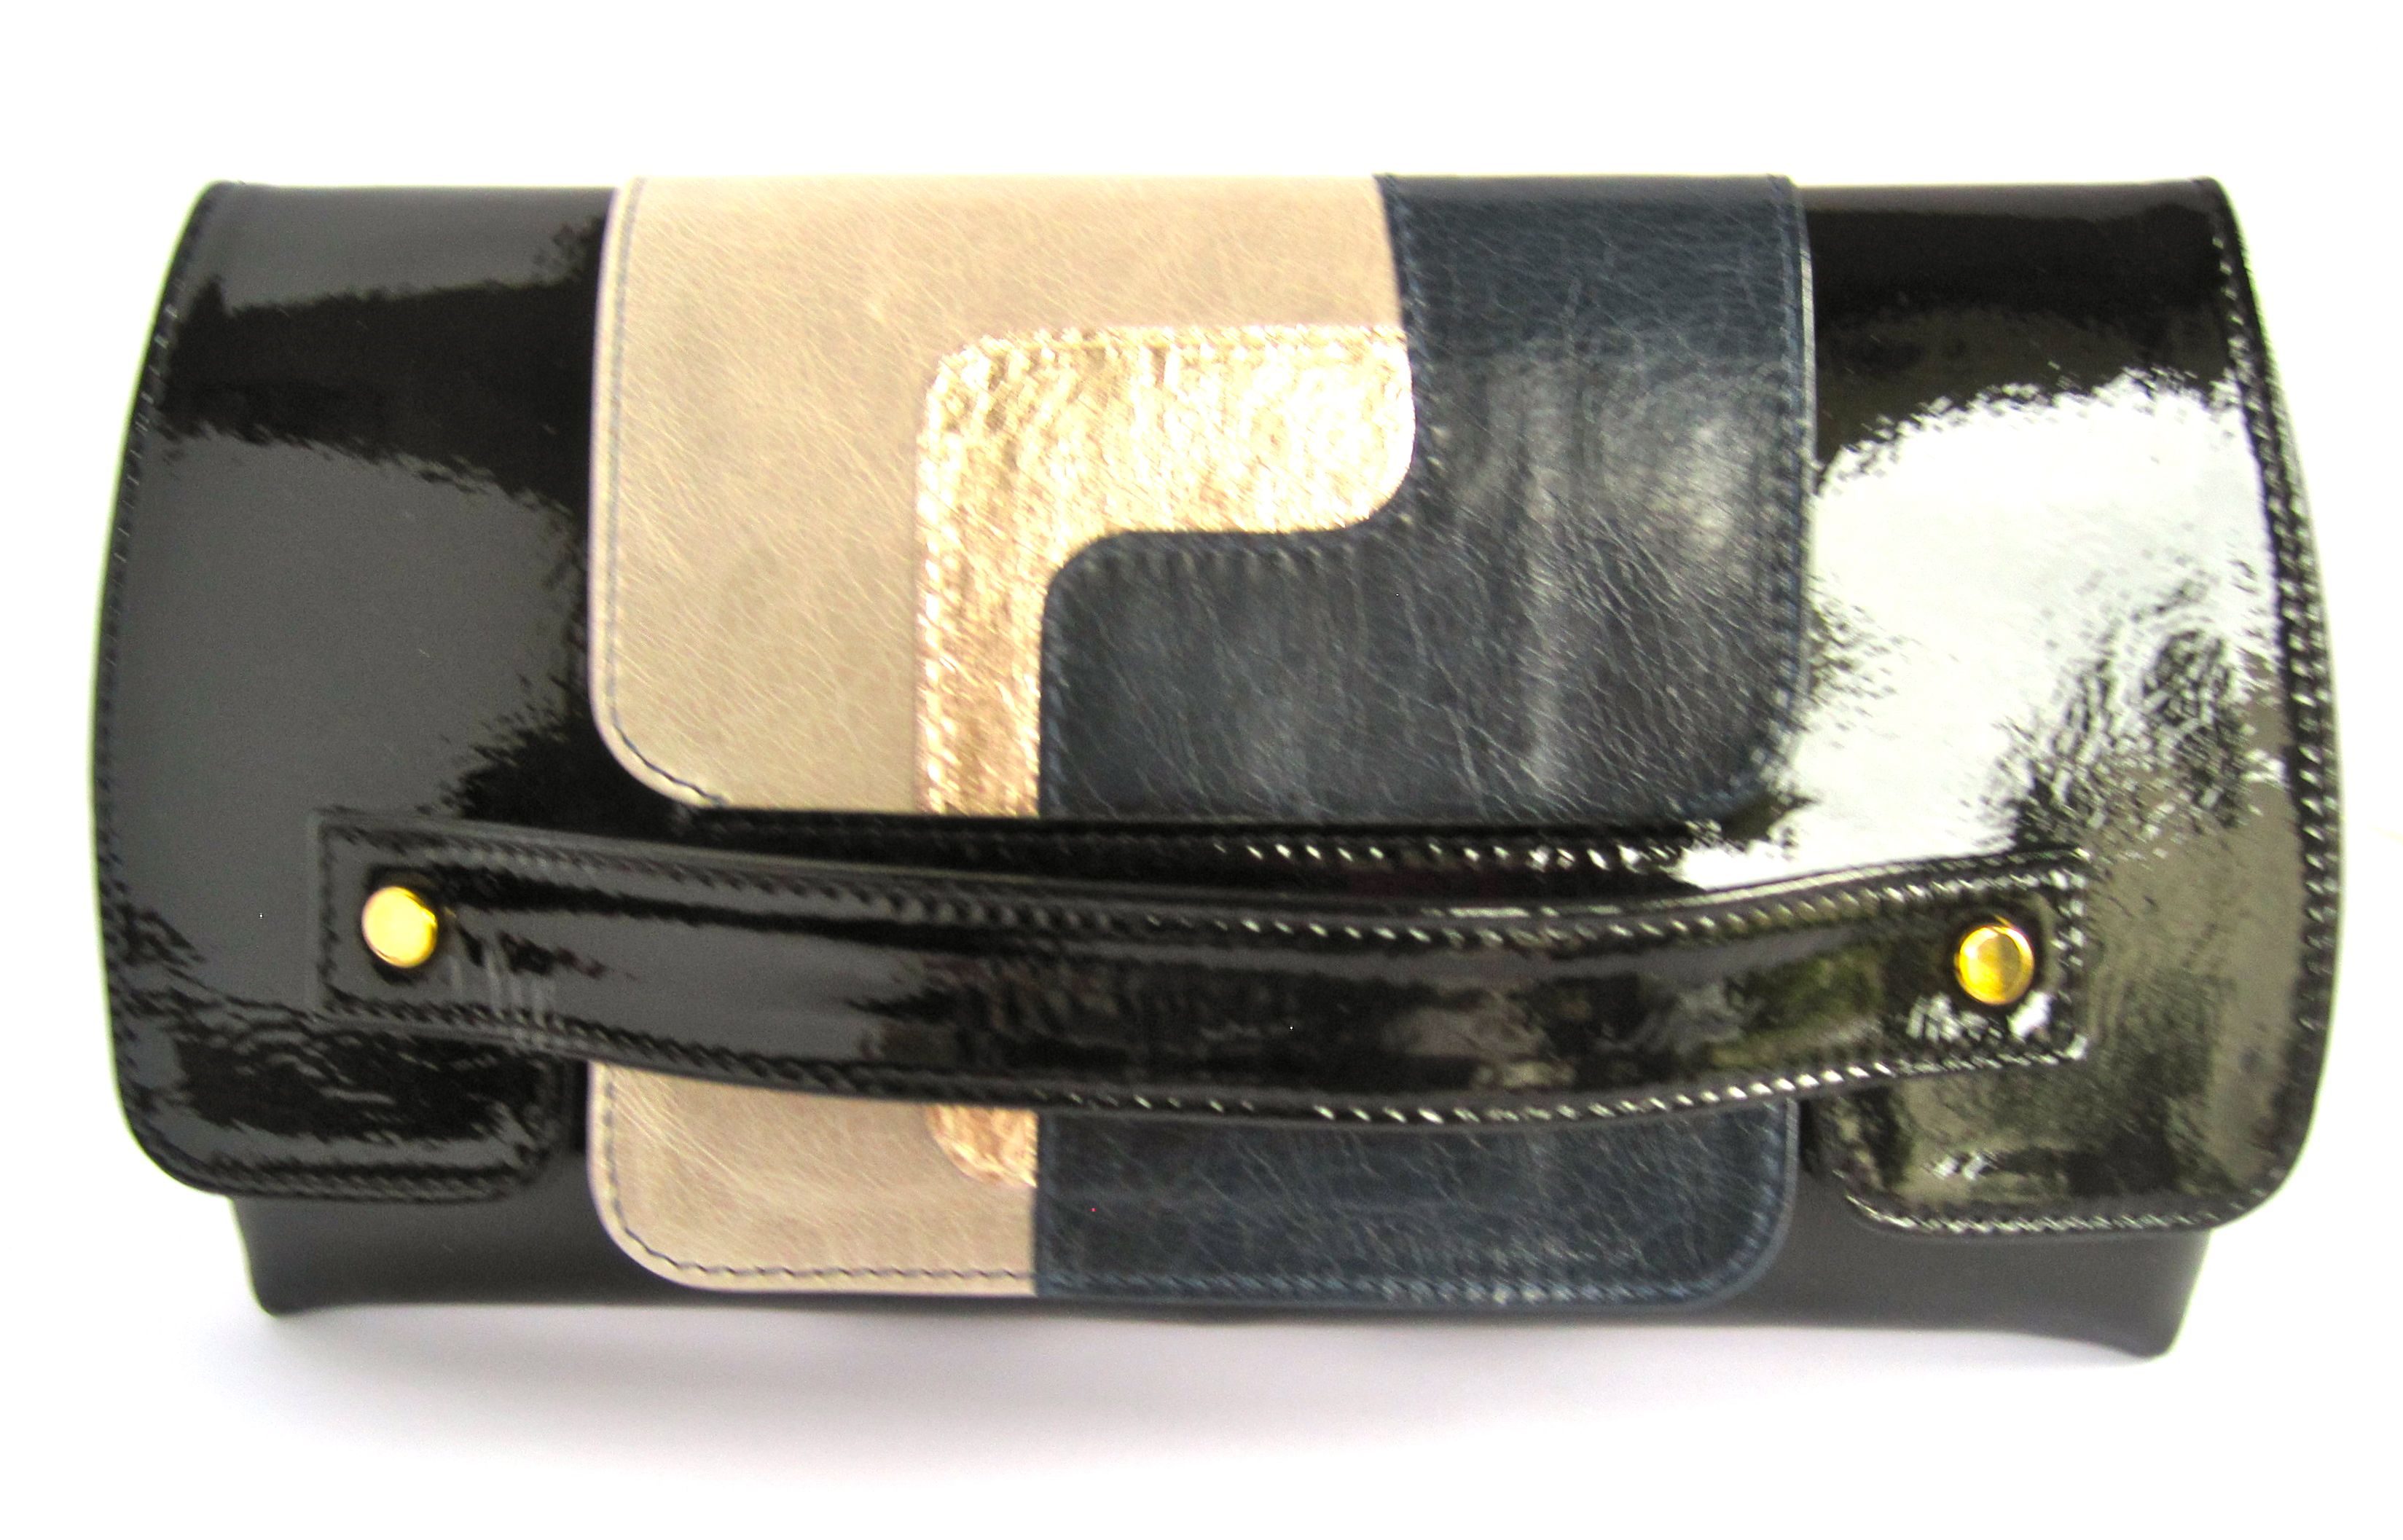 DERRINGER CLUTCH by sophie williams